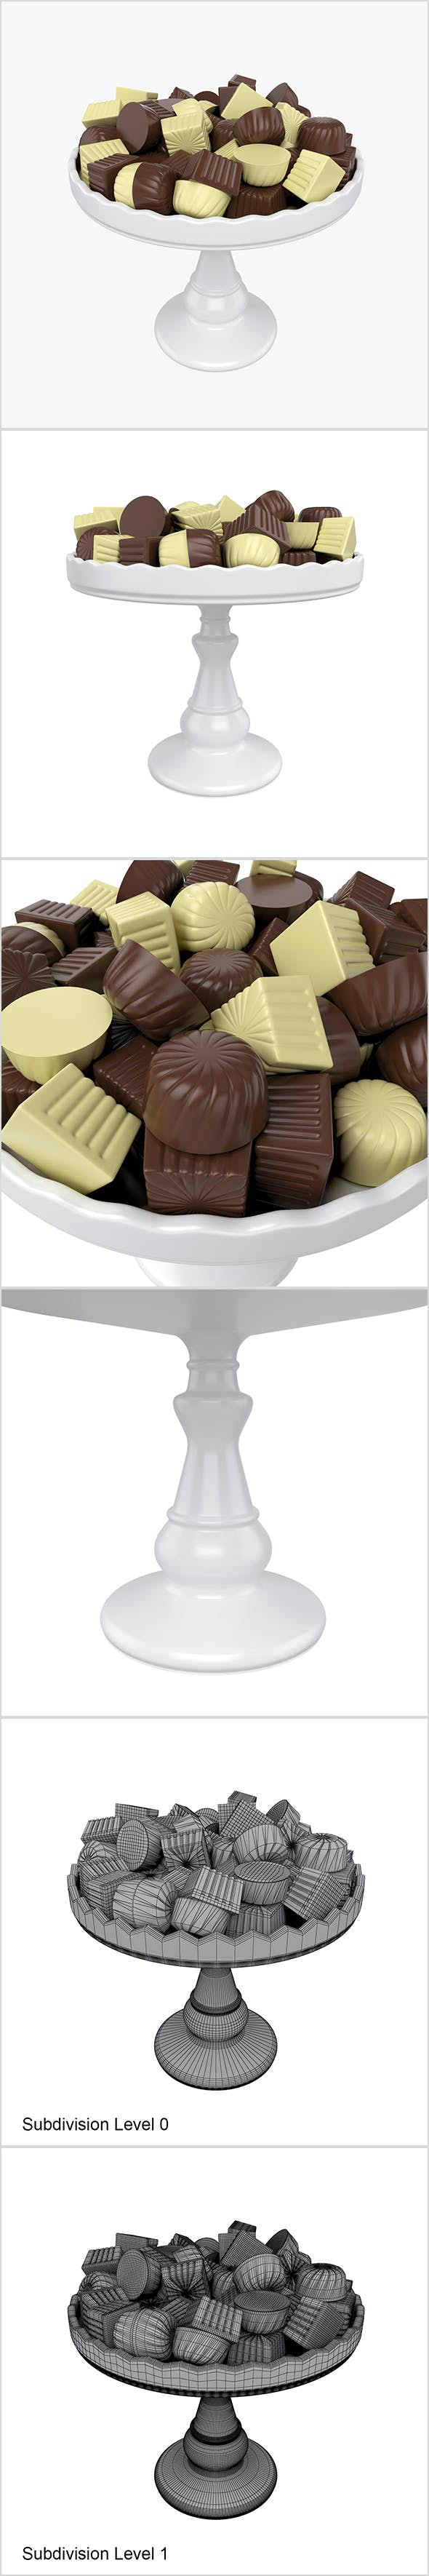 Chocolate candy on tray - 3DOcean Item for Sale